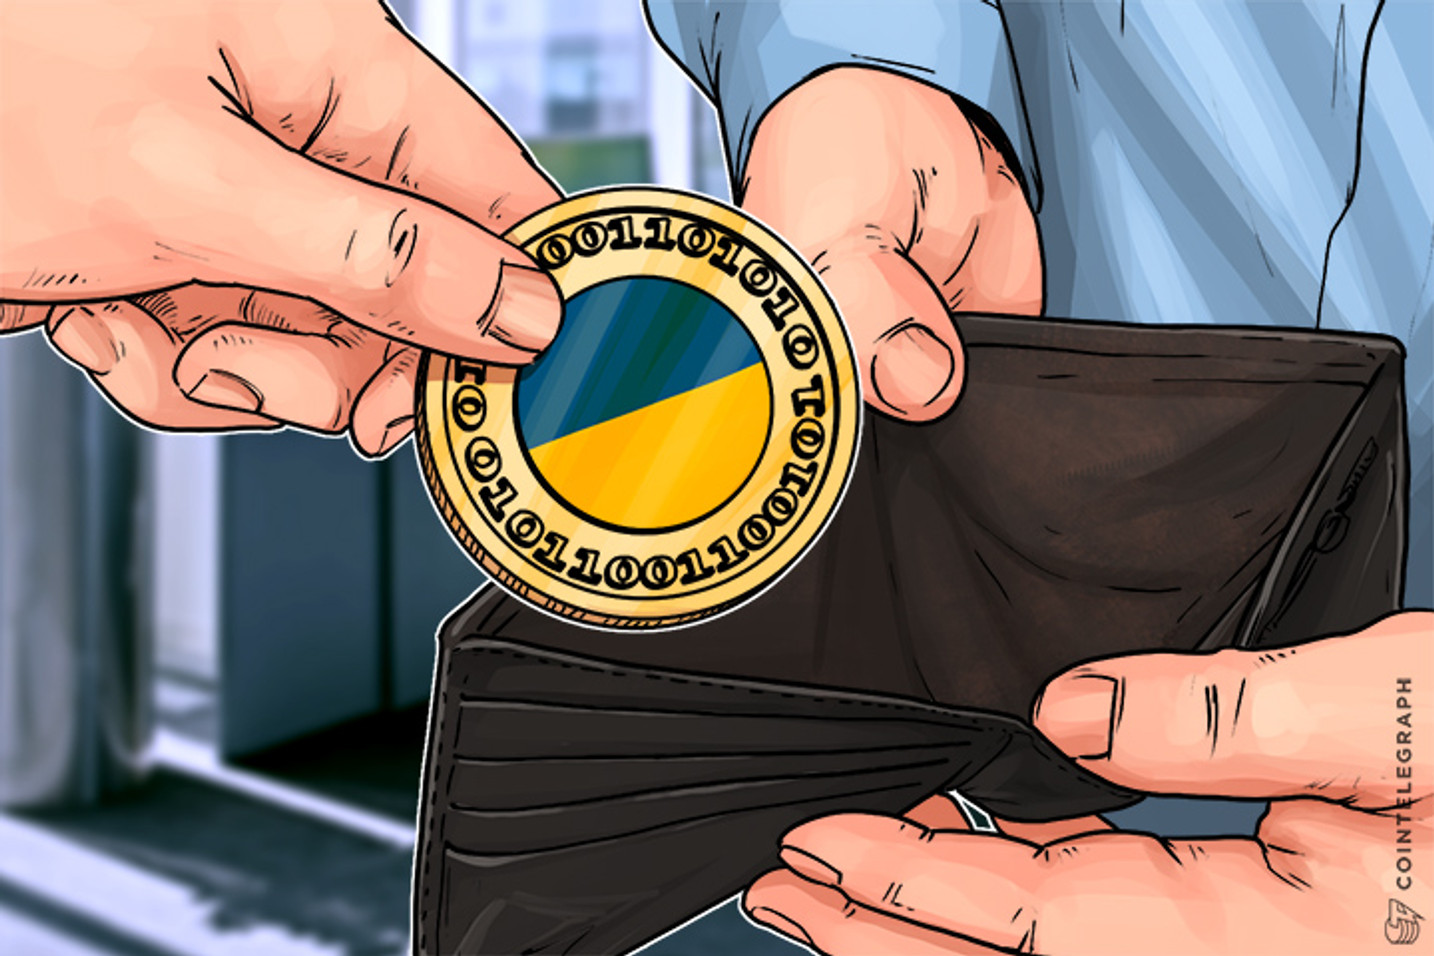 Ukraine to Become Next Country to Go Cashless; Plans National Digital Currency